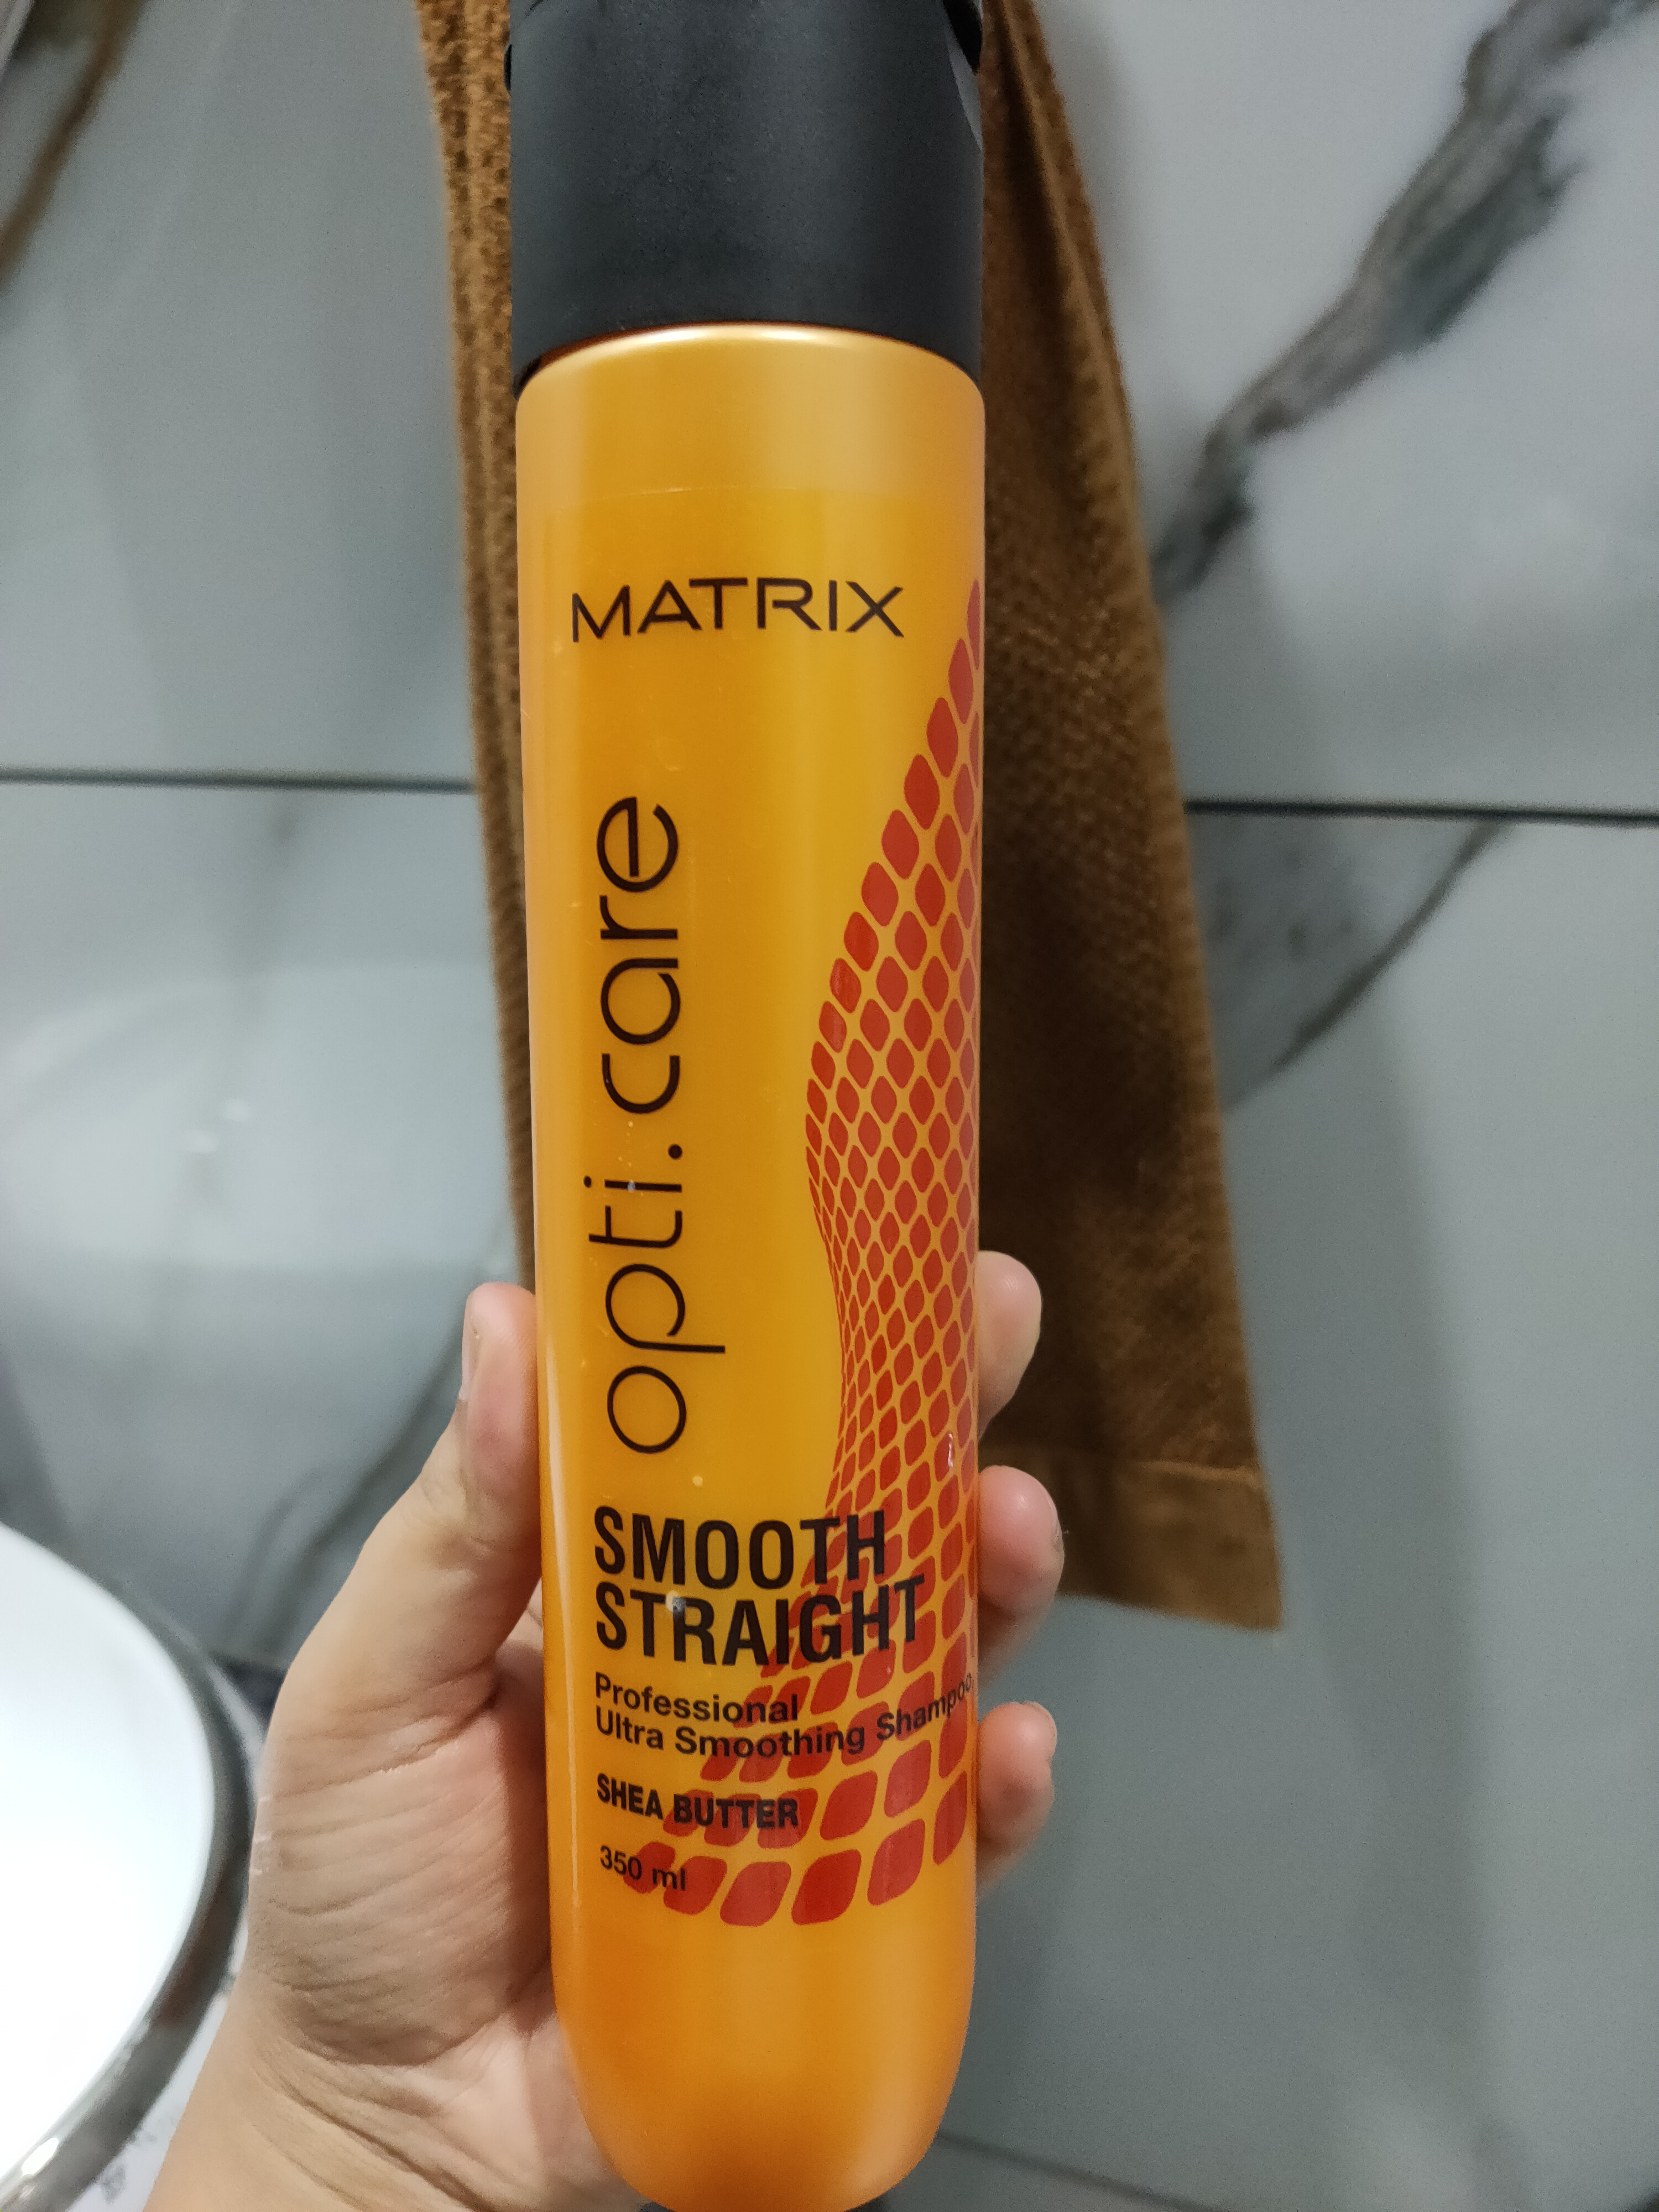 MATRIX By fbb Opti Care Smooth Straight Shampoo -Best Reasonable Shampoo-By suhanigaba